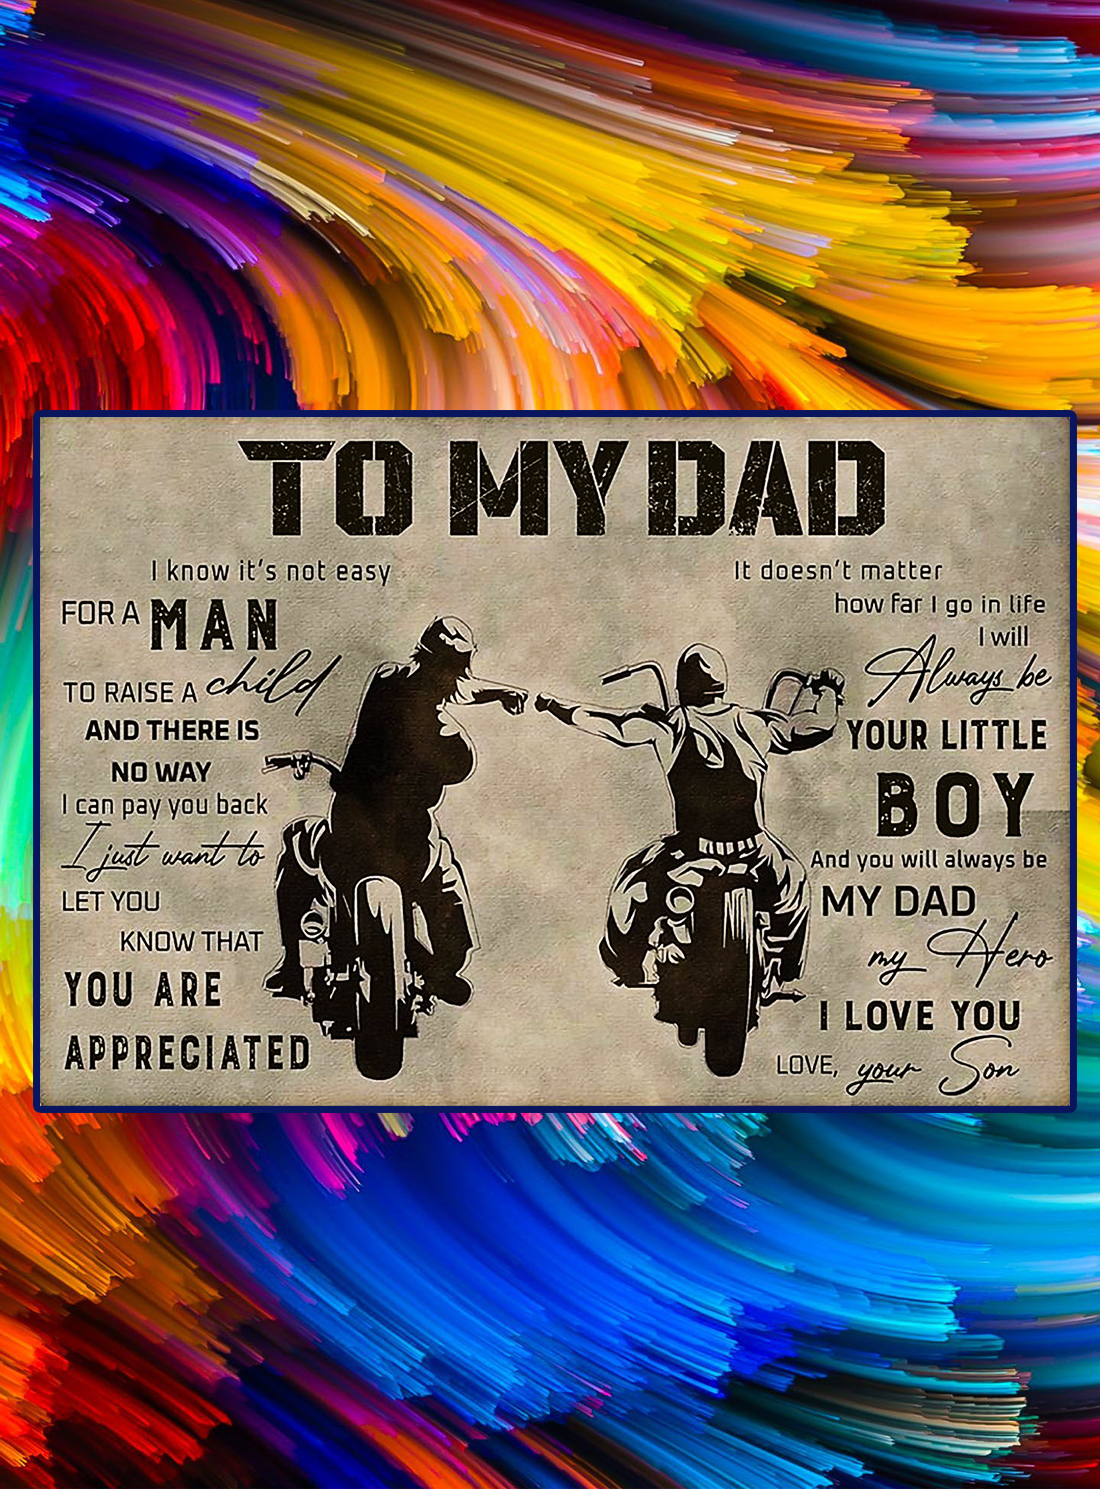 Biker to my dad your son poster